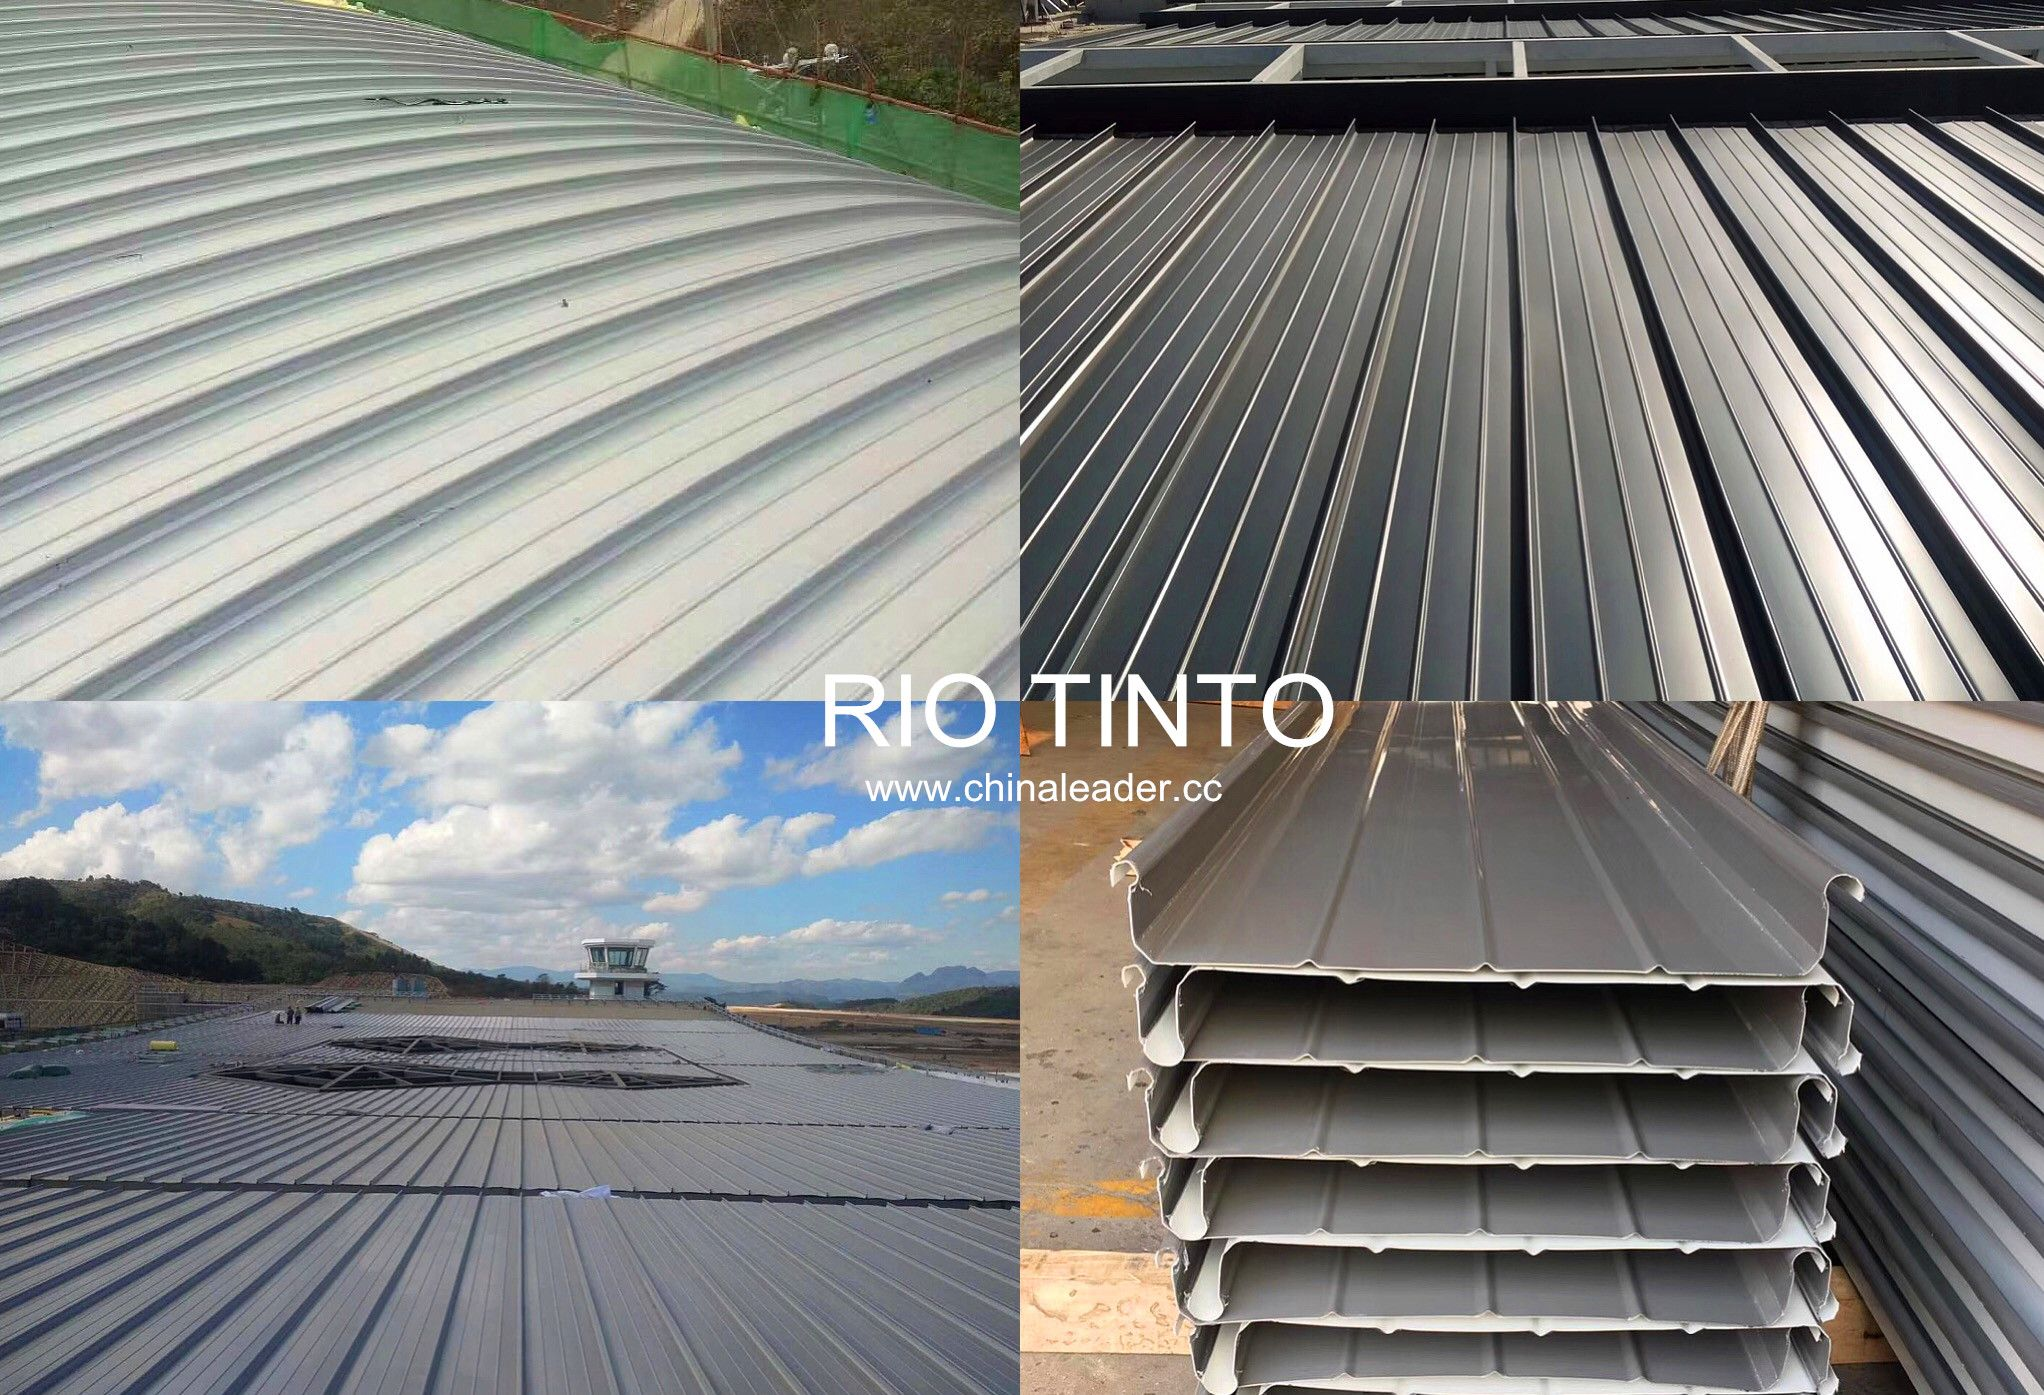 Aluminium Standing Seam Used The Silver Dark Grey Prepainted Aluminum Coils The Aa3003 3004 3105 H24 With Top5 20mic Back Roofing Standing Seam Roofing Sheets